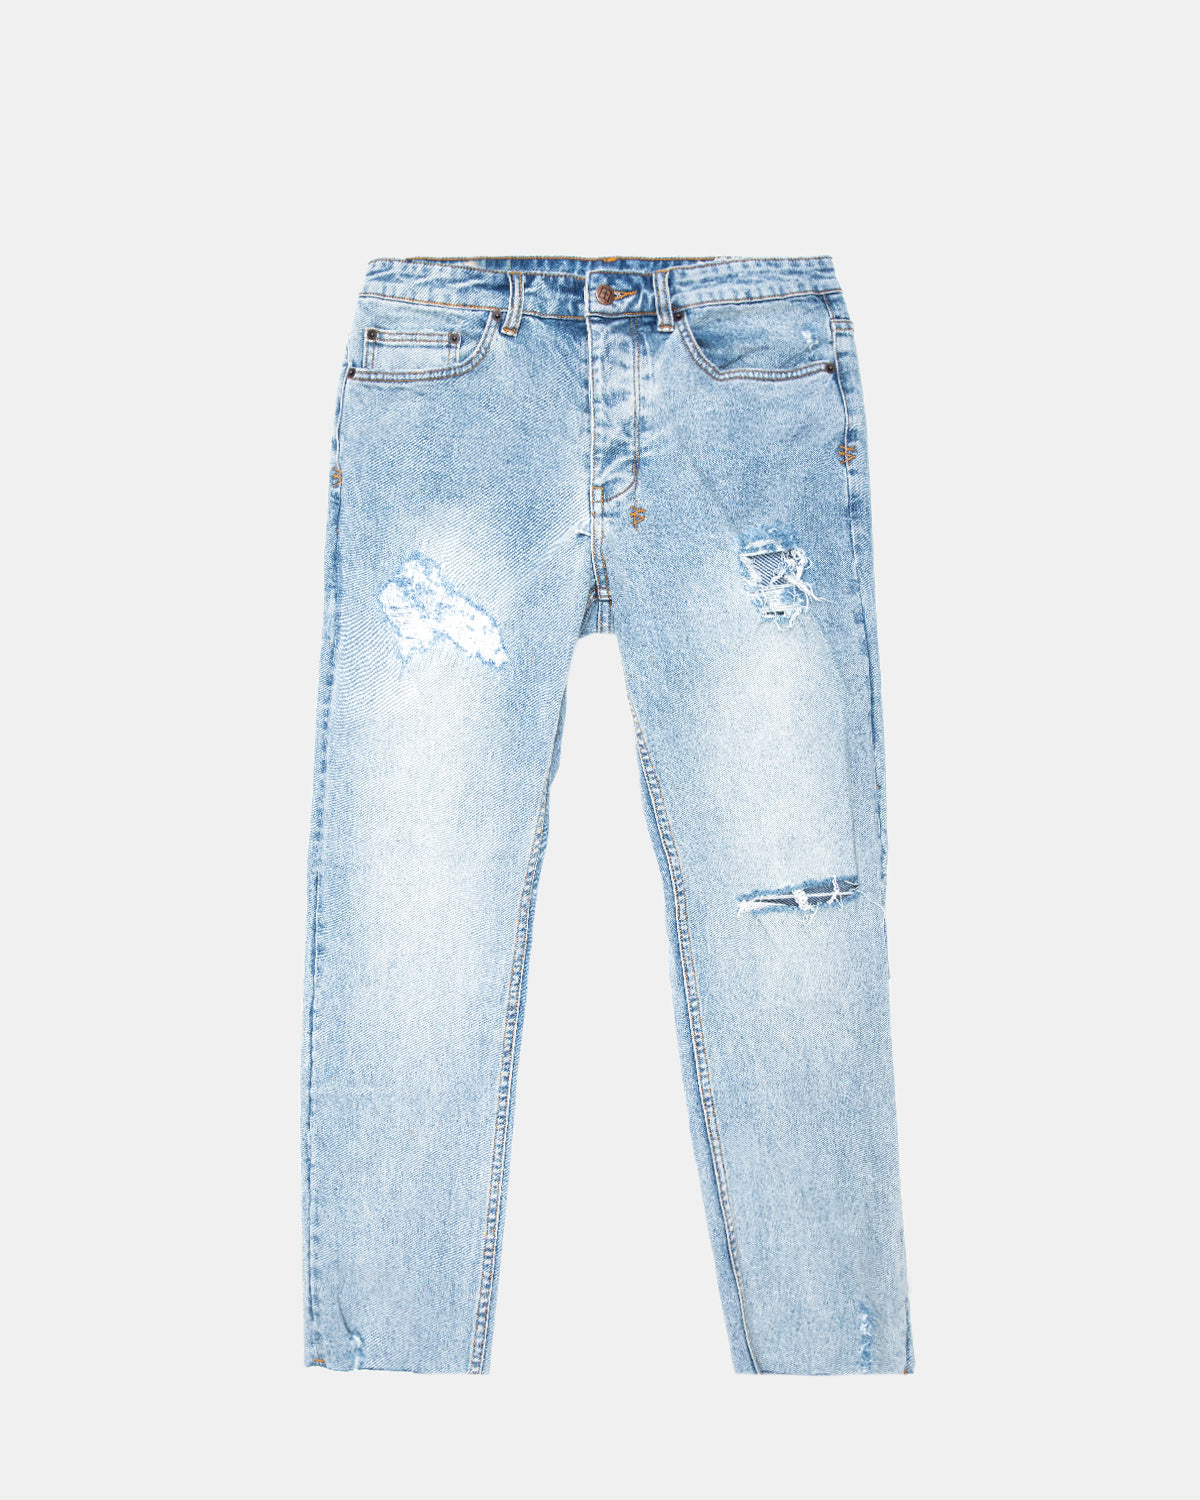 Ksubi - Chitch Chop Slice N Dice Jean (Light Wash Blue)